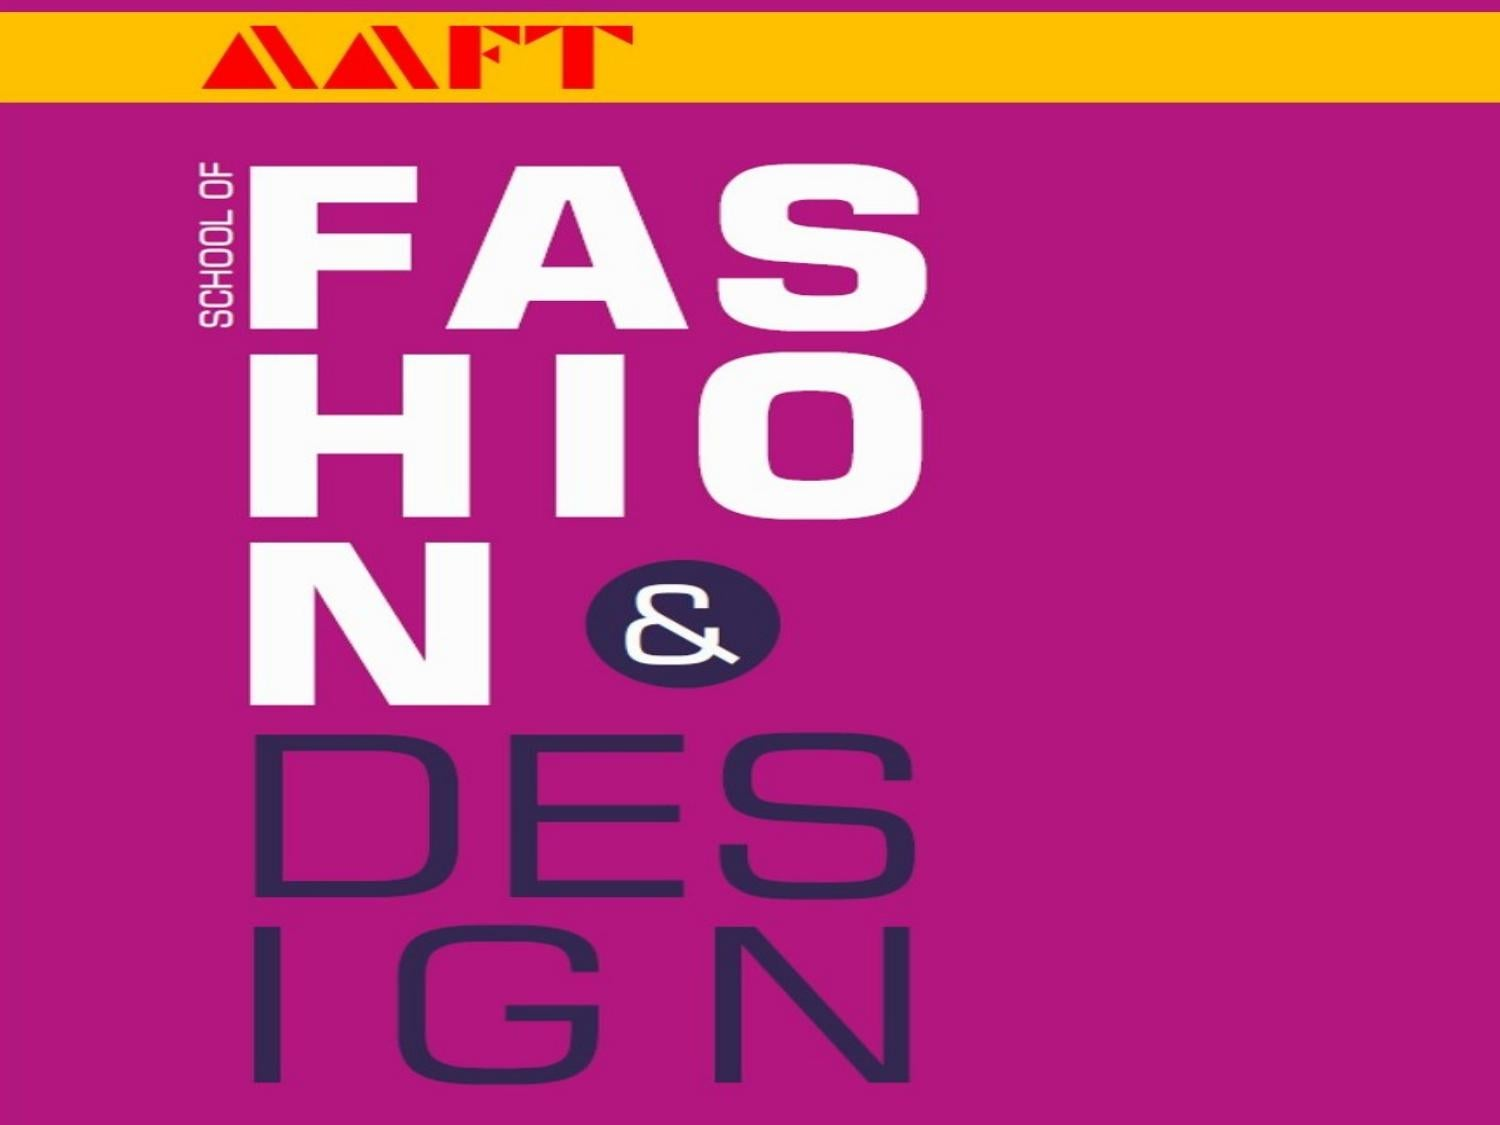 Fashion Designing Colleges In India By Aaft School Of Fashion Design Issuu